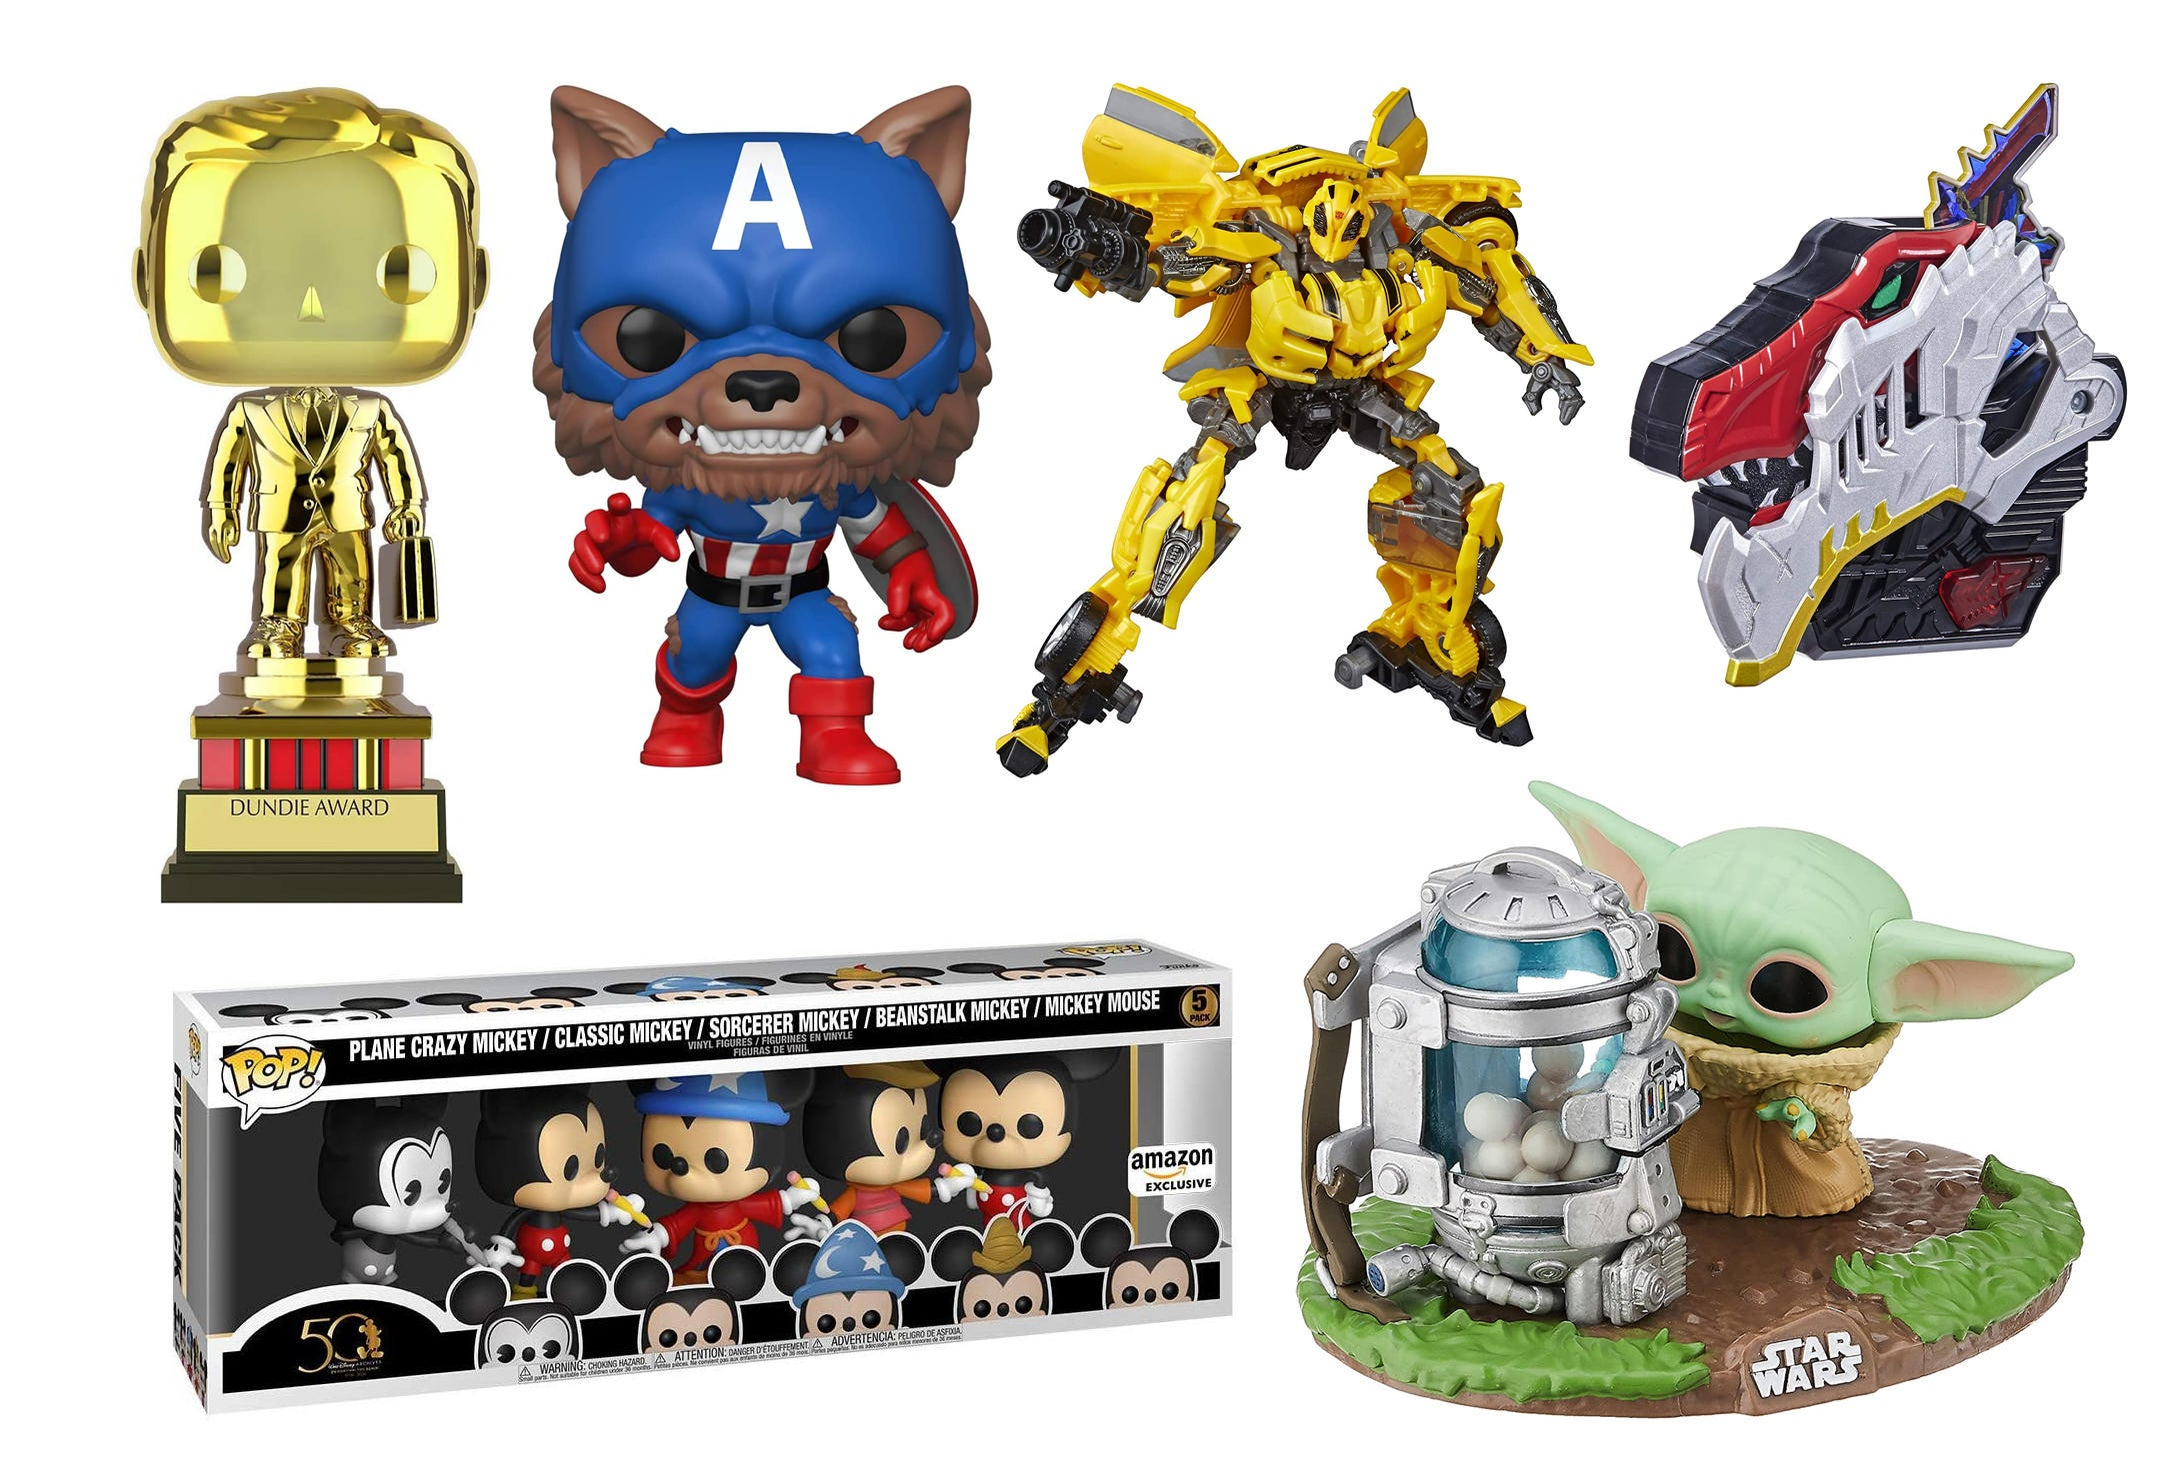 Amazon Launches a Huge One-Day Sale on Funko Pops and Action Figures